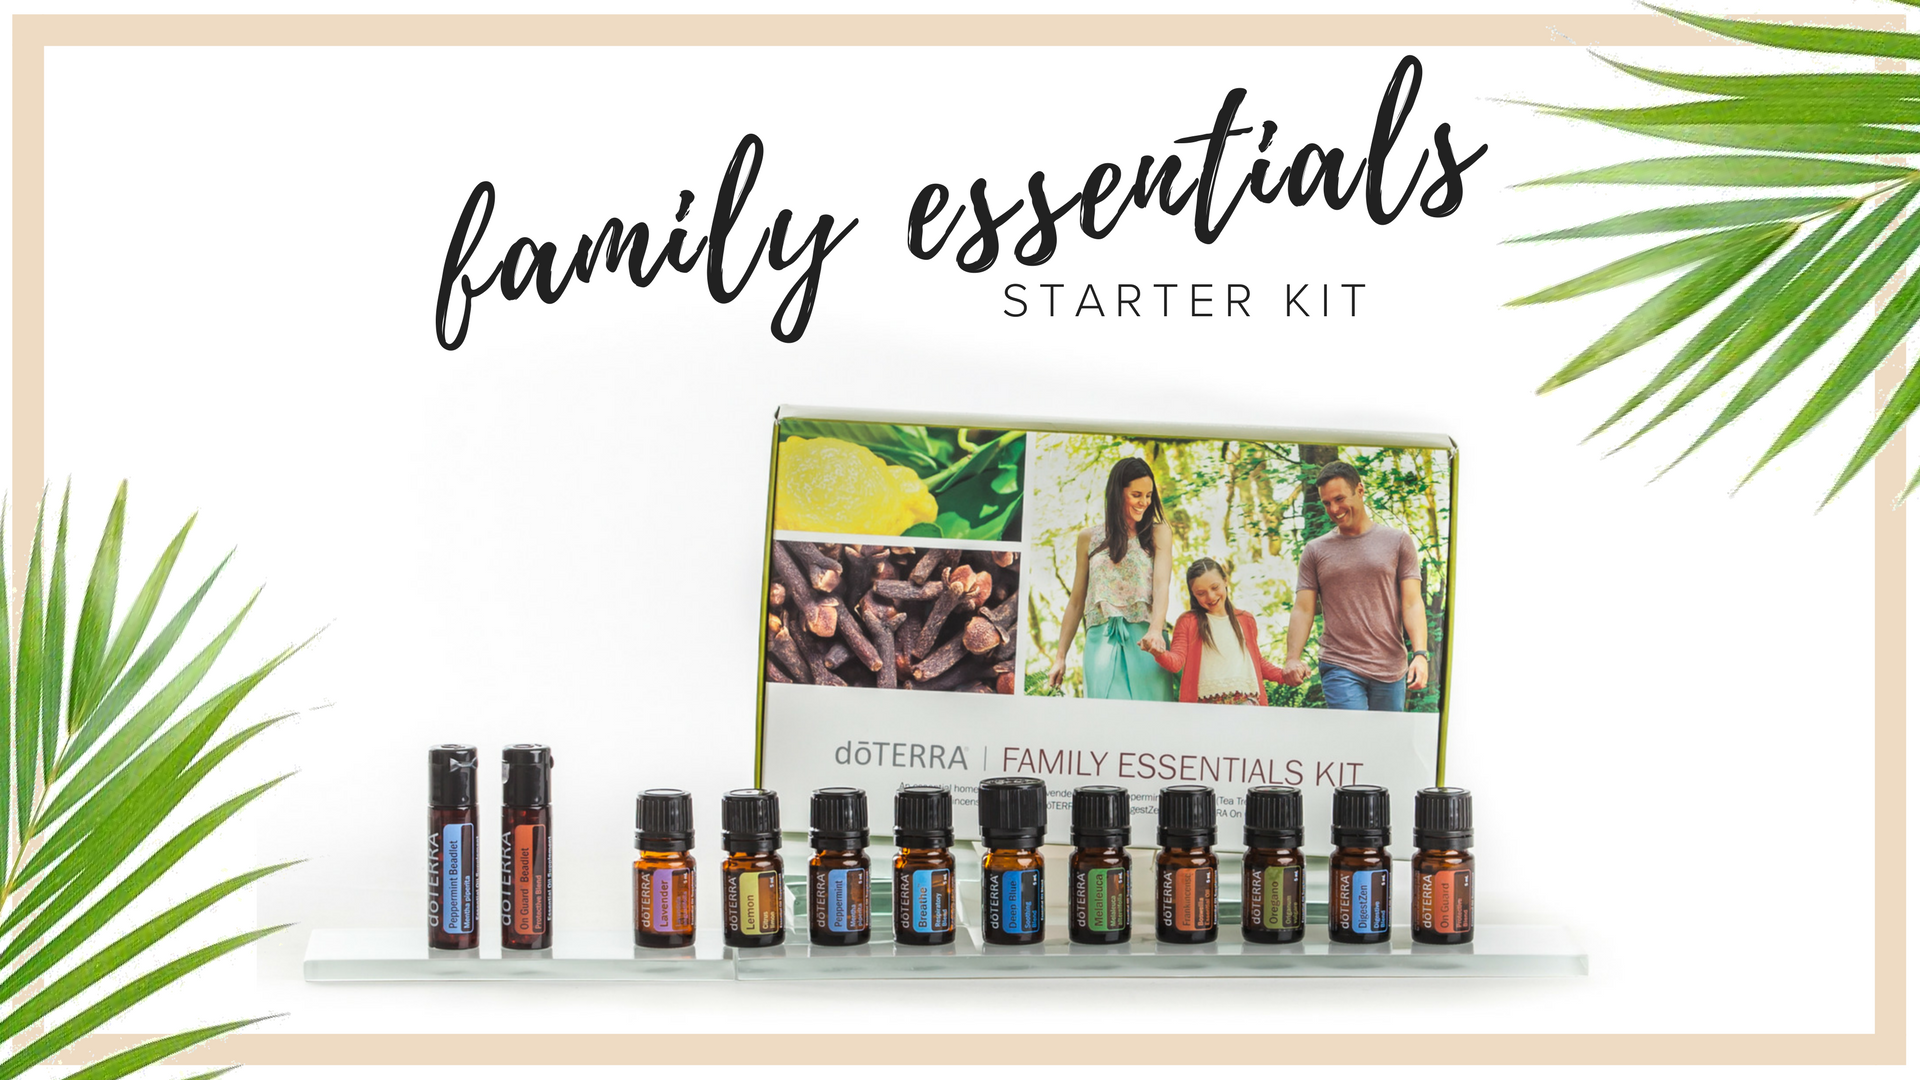 FAMILY ESSENTIALS KIt - $150  This kit contains 10 of the most foundational oils we have in the mini 5 ml (approximately 85 drops) size. i truly feel that no home should be without these staples for natural wellness.You will also receive e eryone's favorite peppermint and onguard beadlets, which are little bursts of pure essential oil encapsulated in coconut gelatin to freshen breath and boost your immune system.  If you'd like these foundational oils, but want to upgrade to the larger size and a diffuser, then the HOME ESSENTIALS KIT may be the right fit for you. With that kit, you'll get 3x the oils plus a diffuser, for less than 2x the price.  Retail Cost $200. Wholesale Kit Price $150. $90 in Savings.  all new memberships include Exclusive aila love welcome gifts, a personal consultation with maile, ongoing education opportunities & a support community.